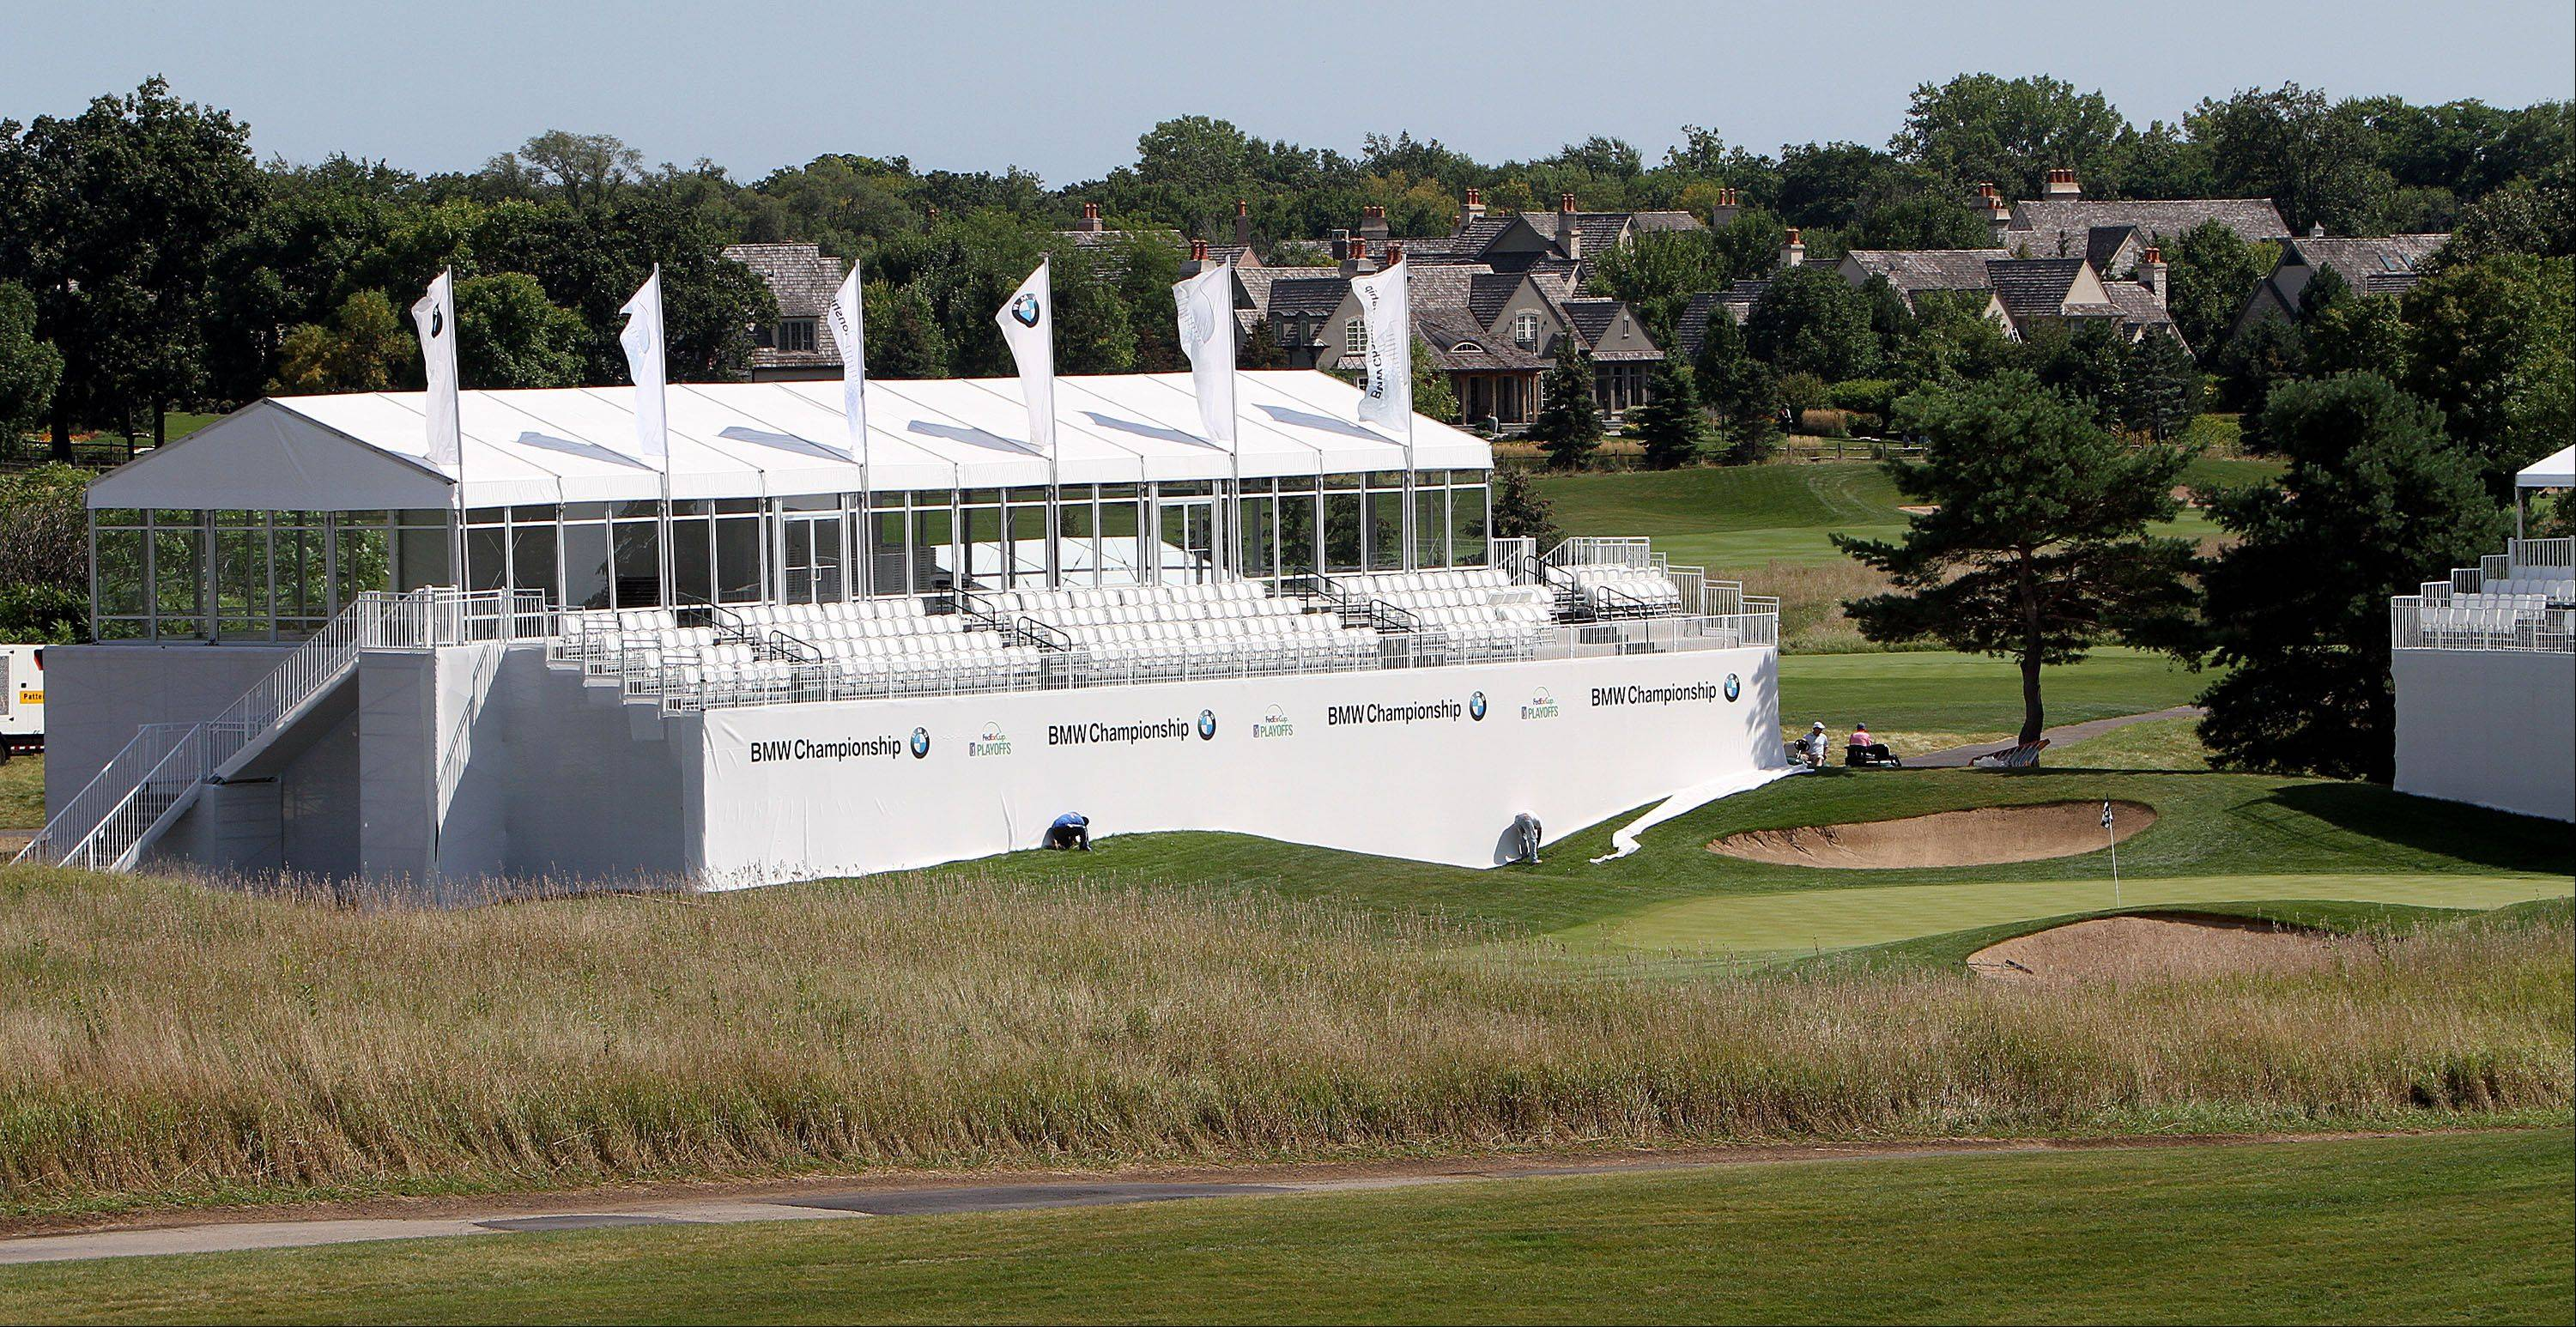 A hospitality chalet sits on the 15th green at Conway Farms in Lake Forest in advance of the BMW Championship. The suites will have climate-controlled interiors, food and bar service, and TVs.